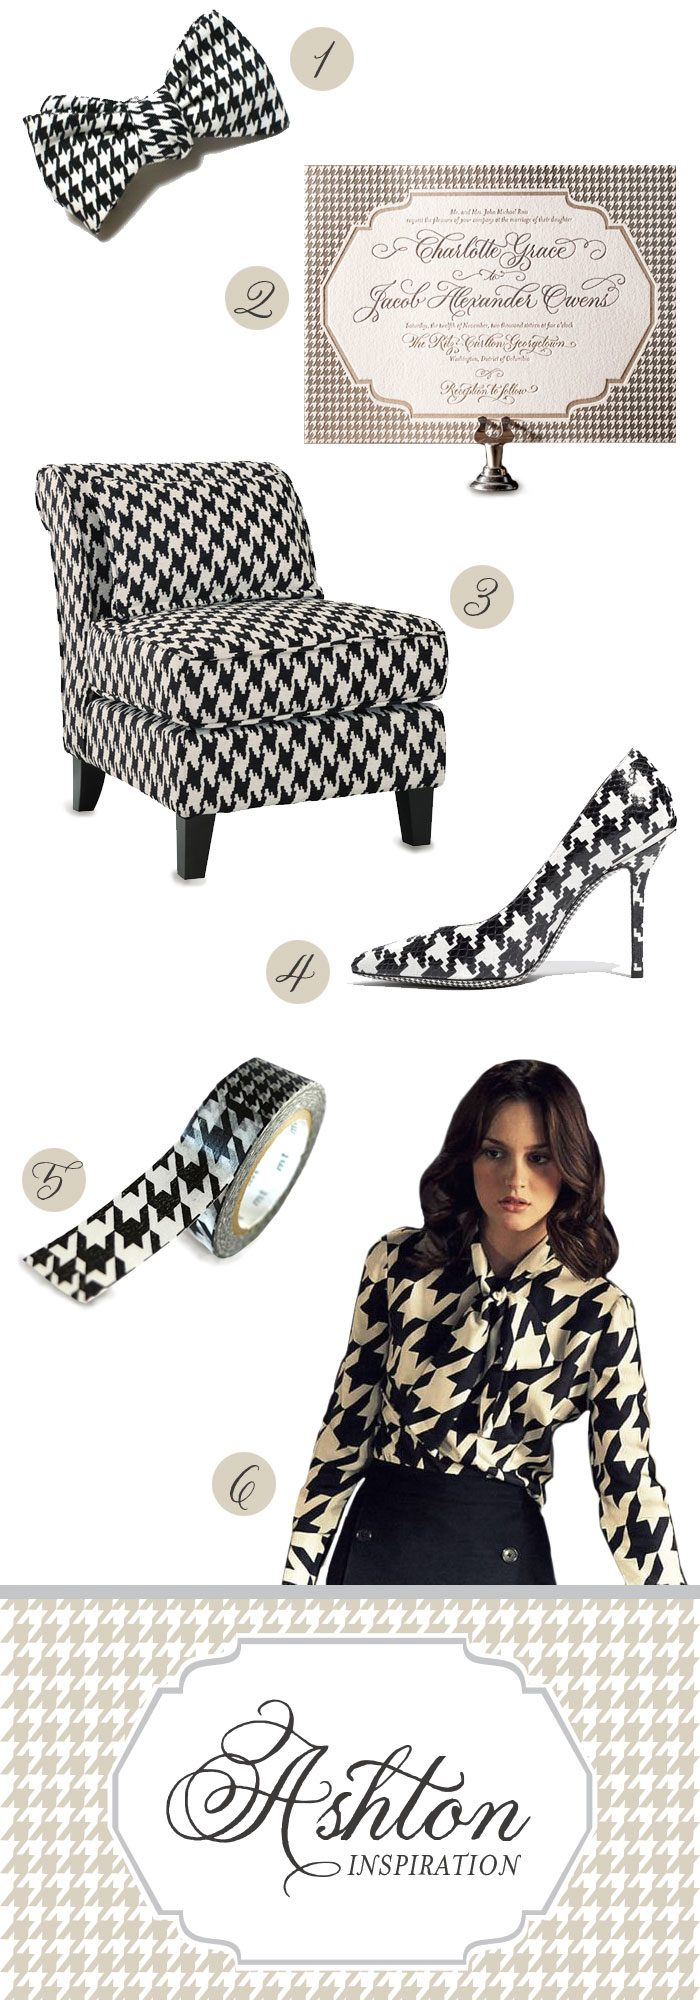 Meet Ashton, a houndstooth inspired design, created by Darcy Sang for Bella Figura